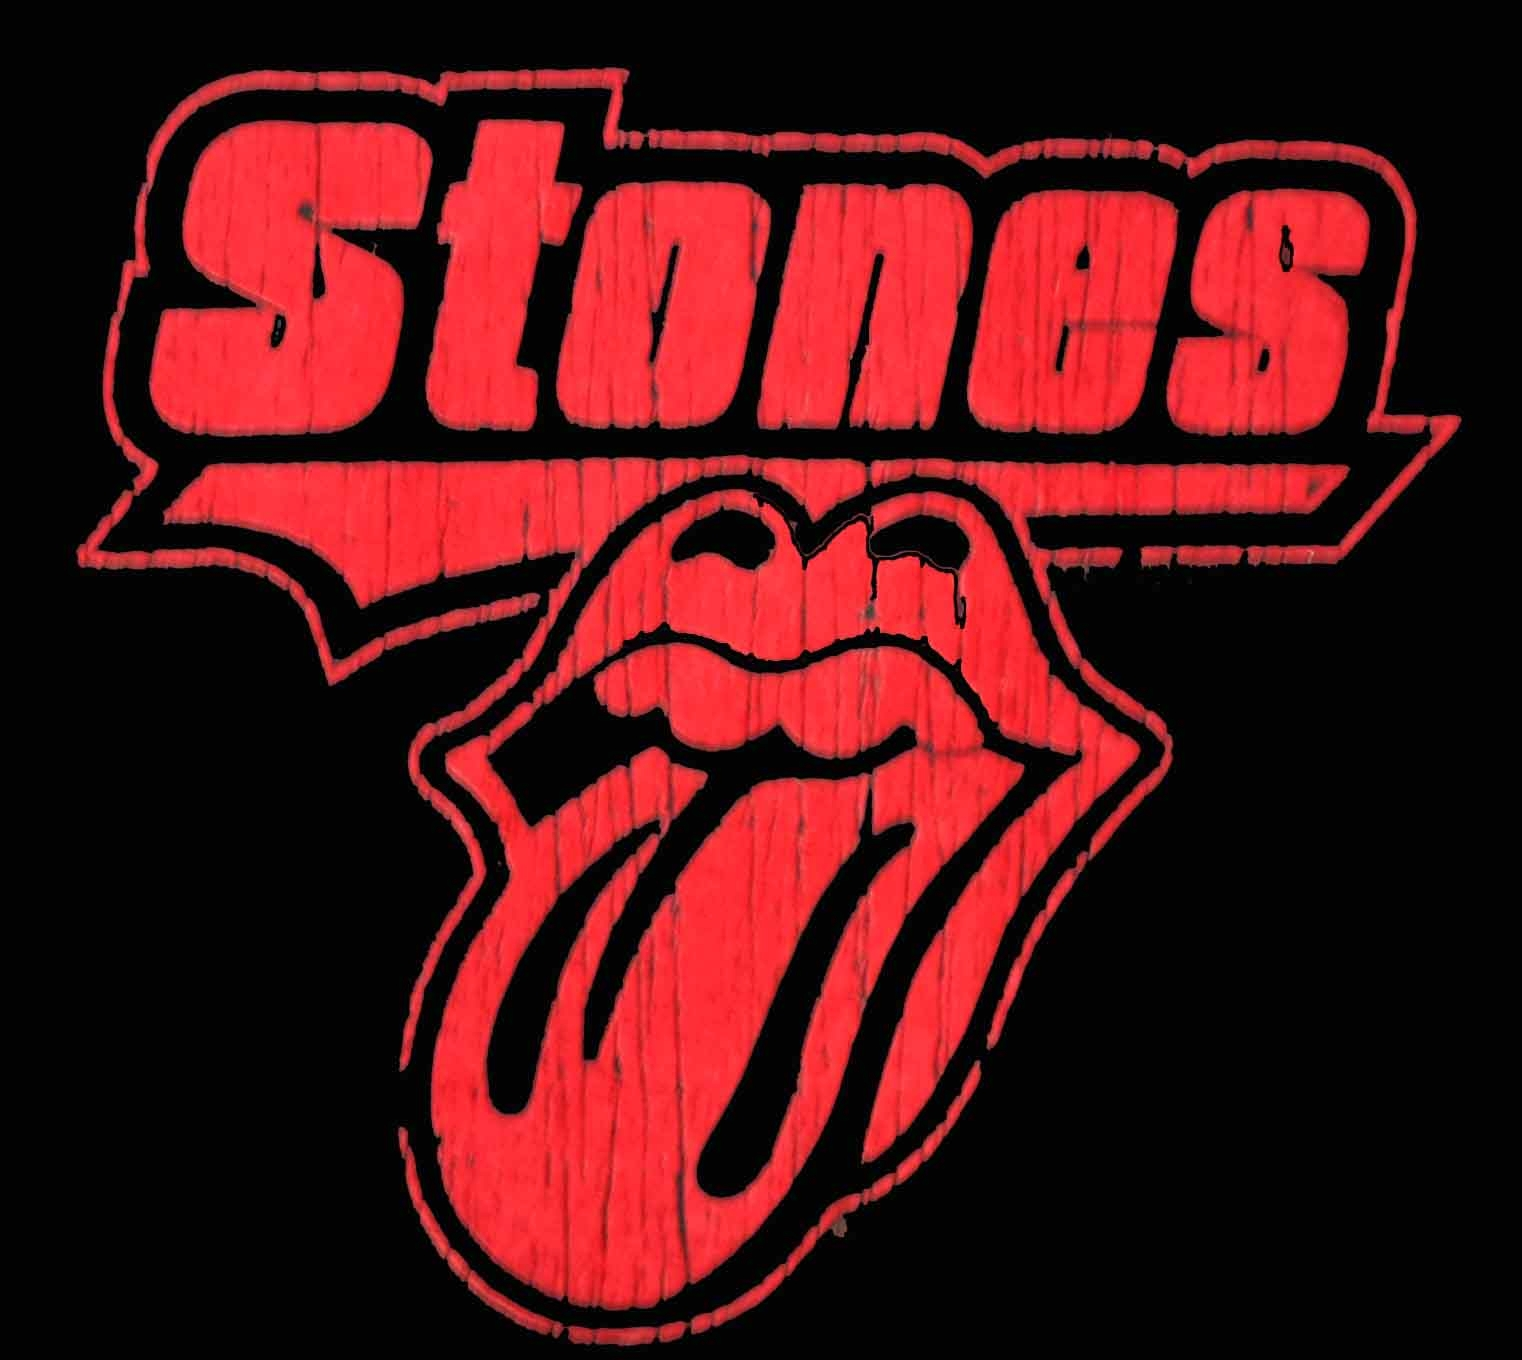 Rolling Stones Tongue Wallpaper The Rolling Stones Tongue 1522x1360